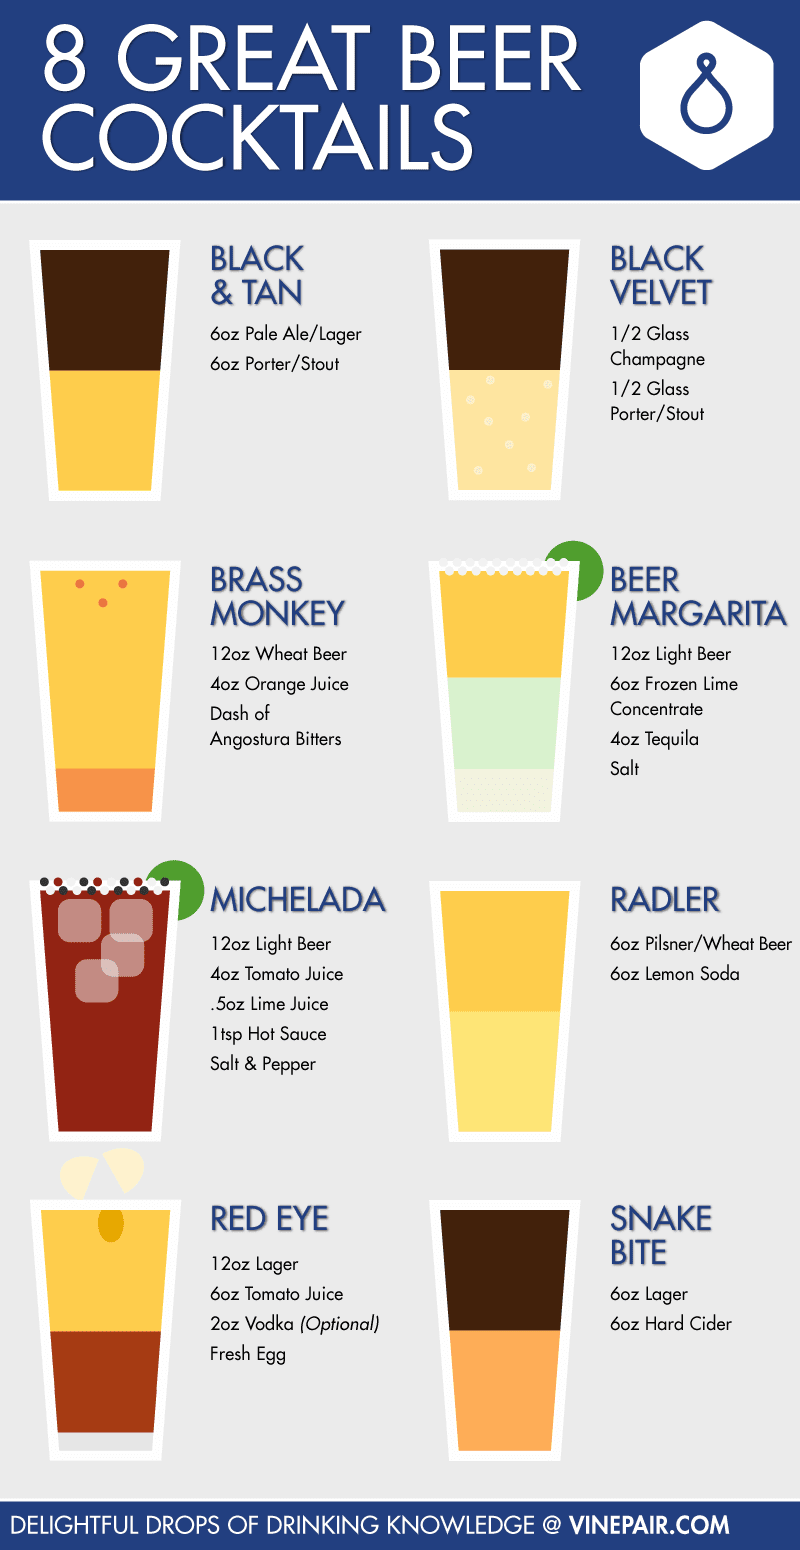 8-great-beer-cocktails.png